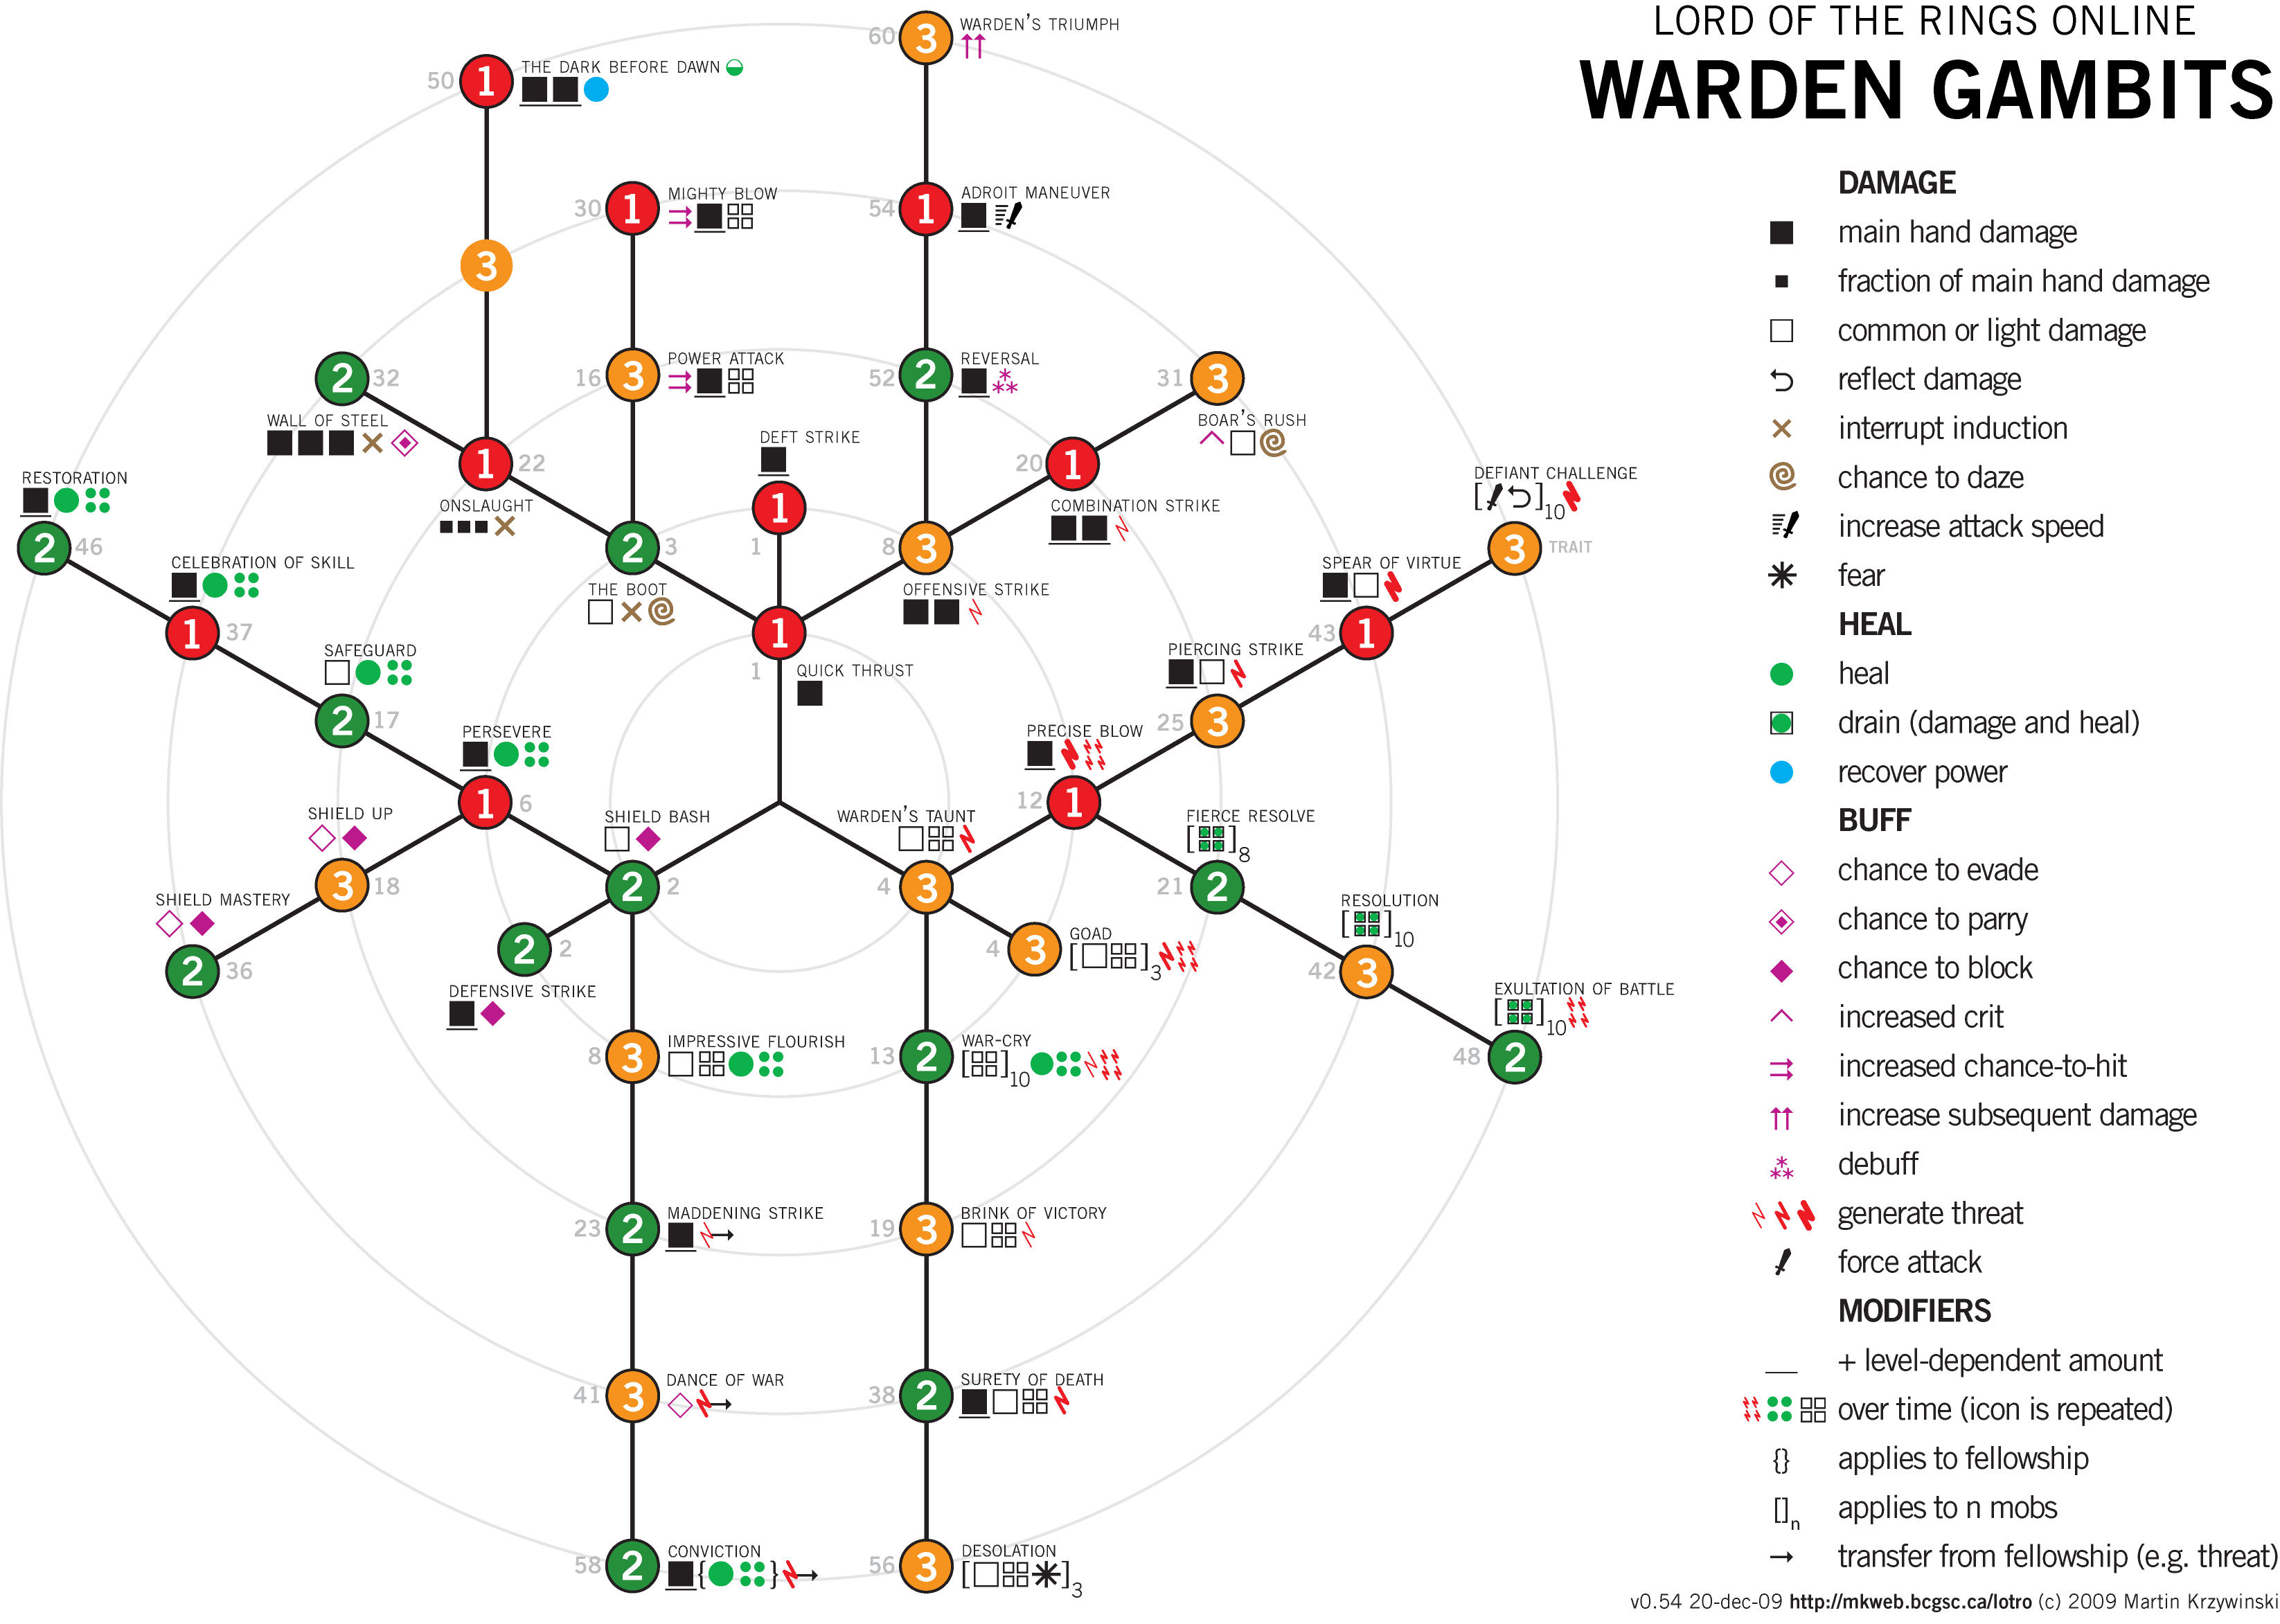 Warden Gambit Chart - Lord of the Rings Online (LOTRO